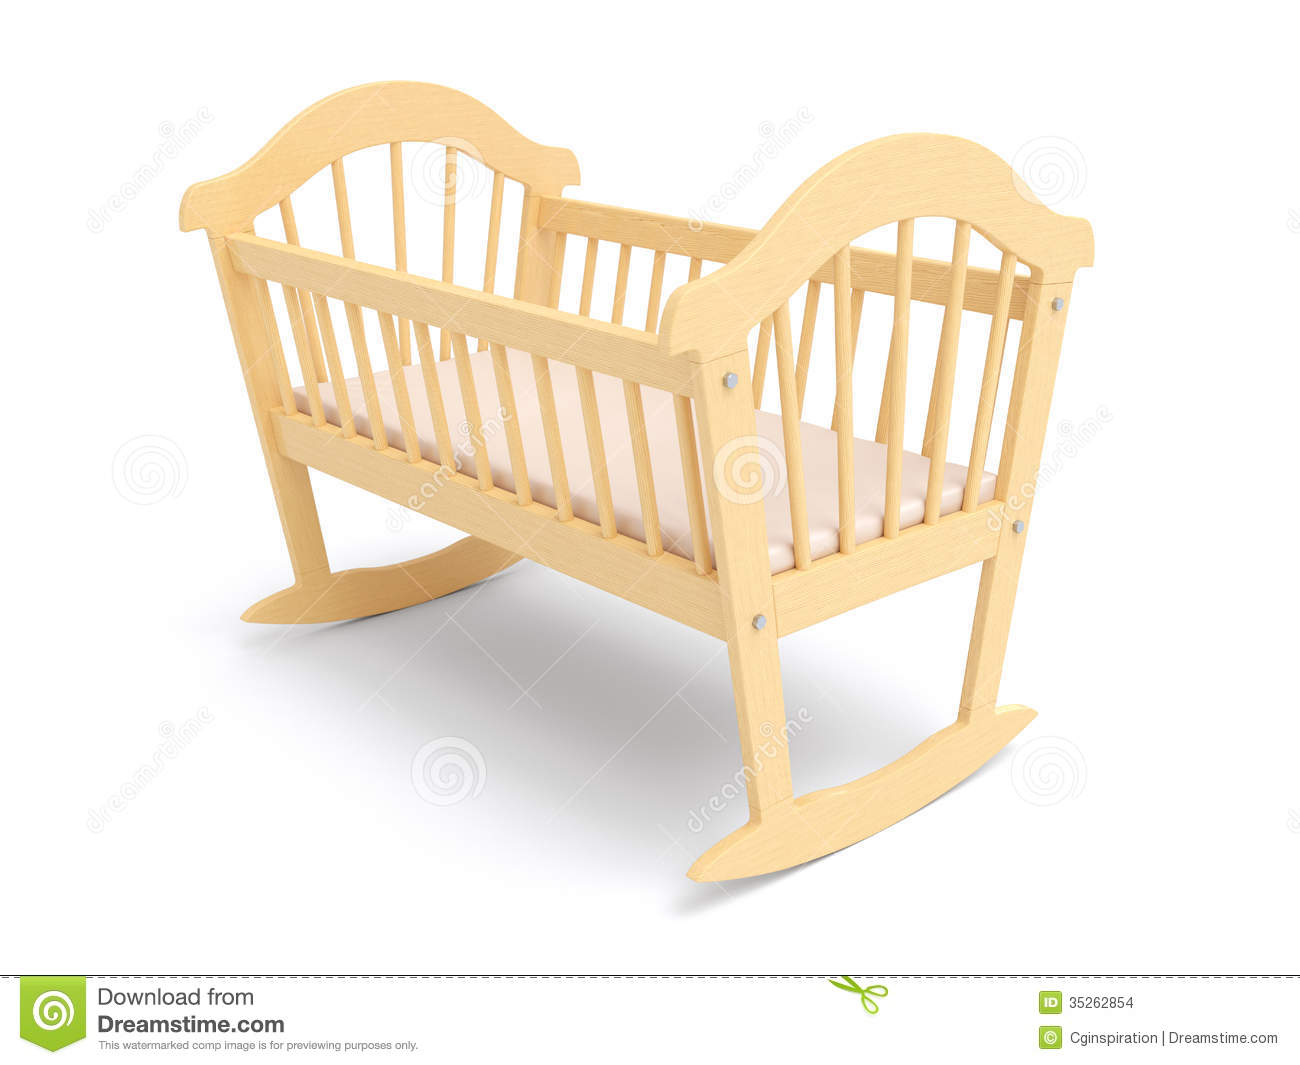 Plans For Baby Doll Crib | Search Results | DIY Woodworking Projects